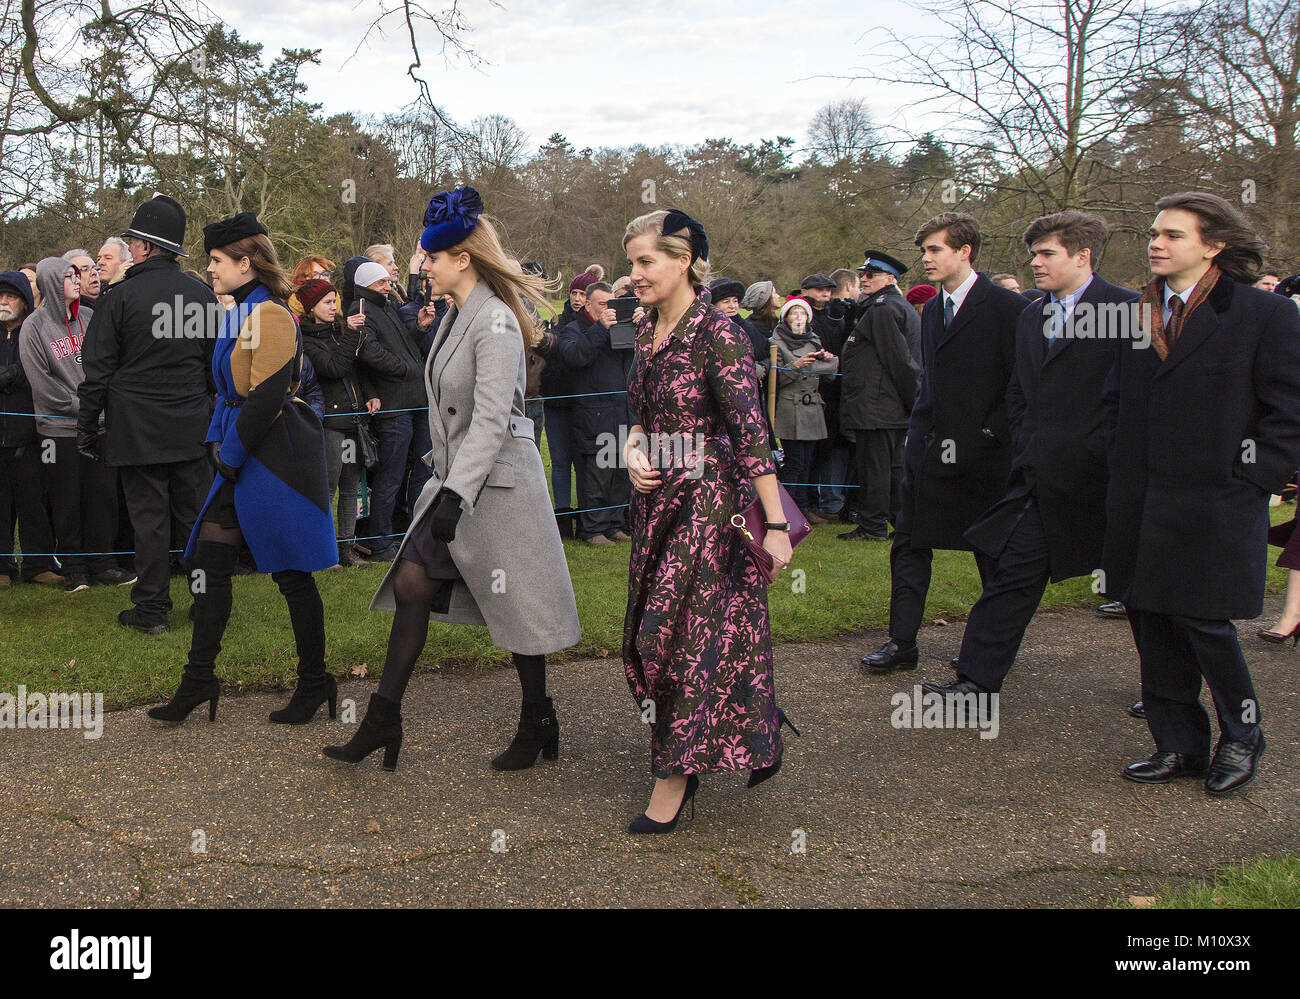 The British Royal family arrive at Sandringham to celebrate Christmas Day  Featuring: Princess Eugenie, Princess - Stock Image